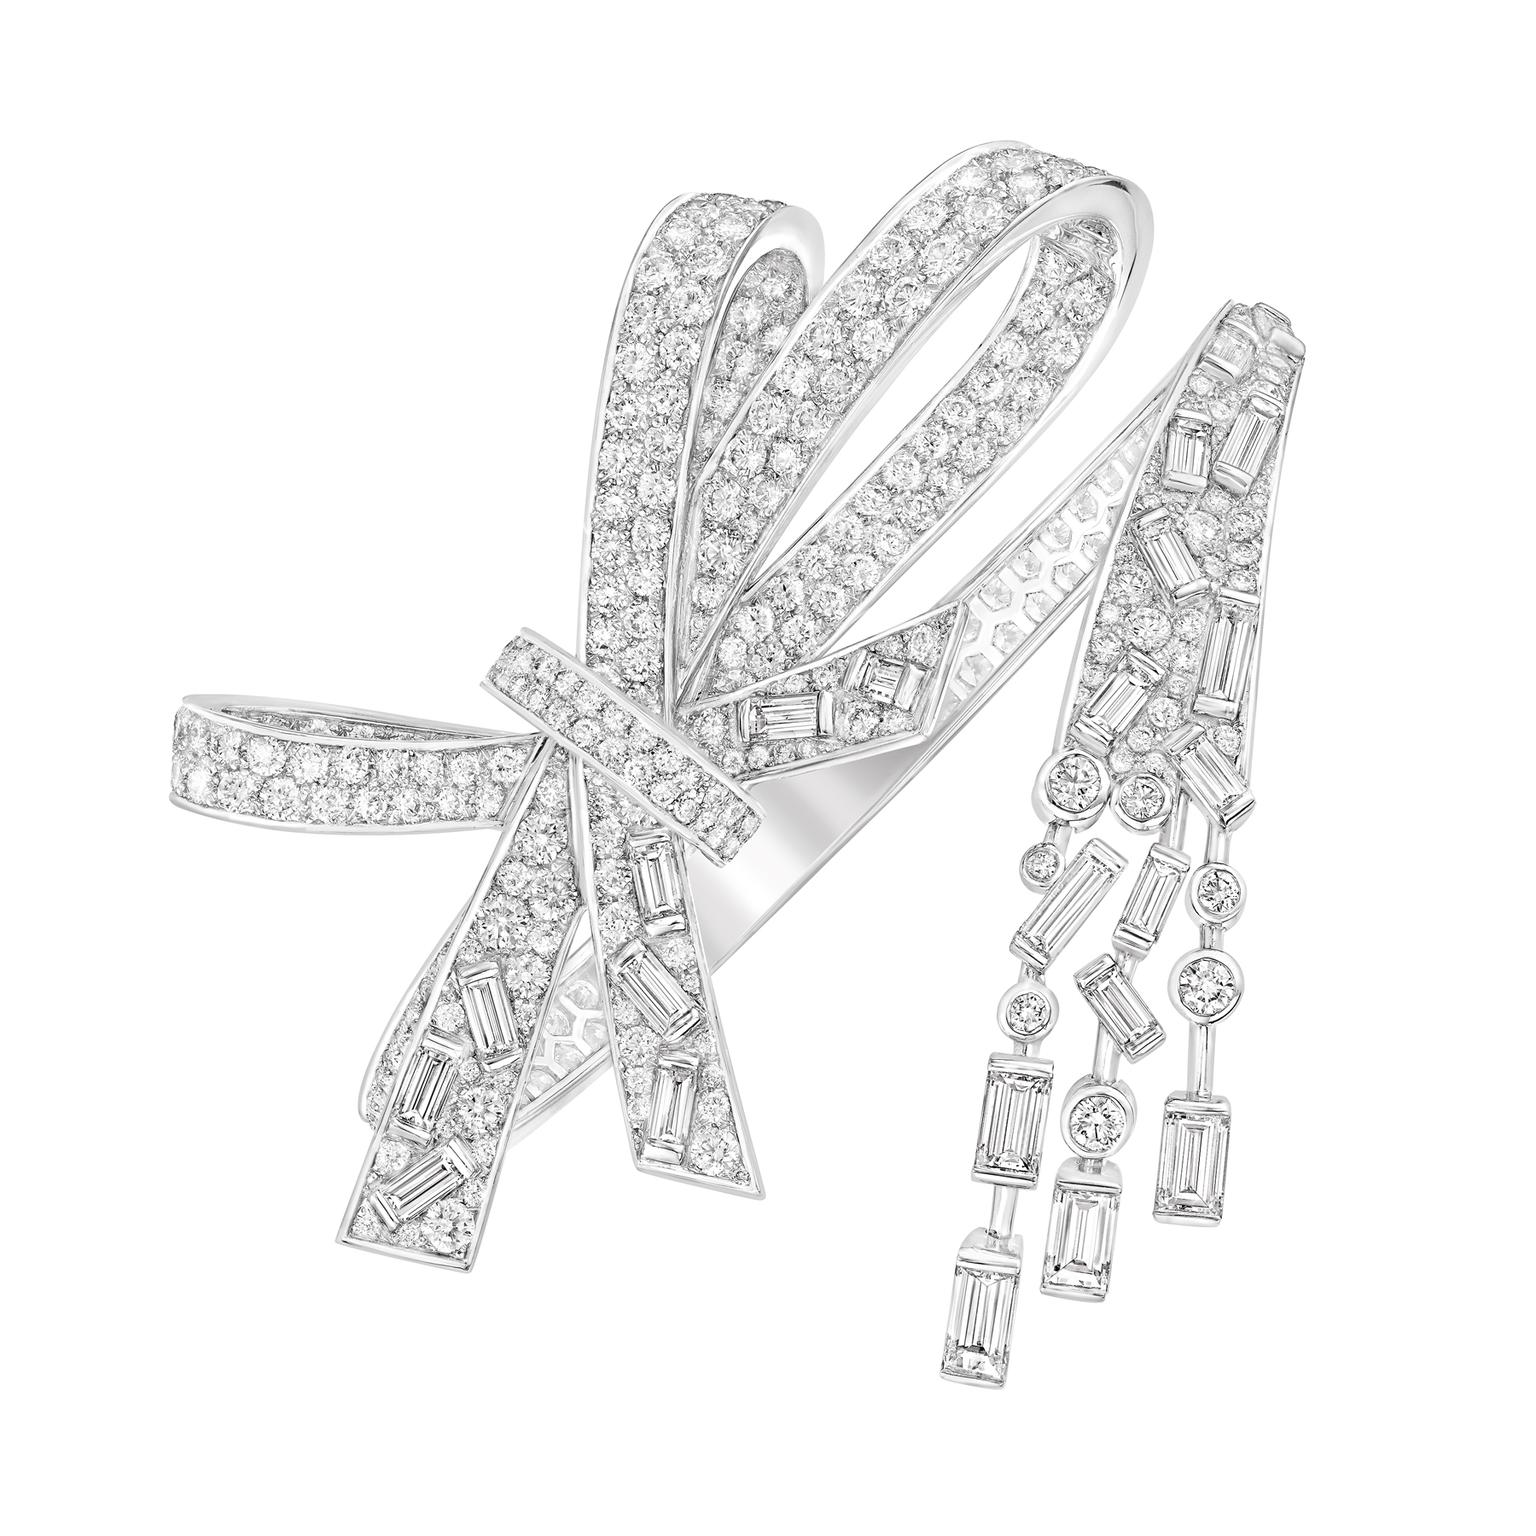 Chanel Les Intemporels Ruban Prestige baguette-cut diamond bracelet